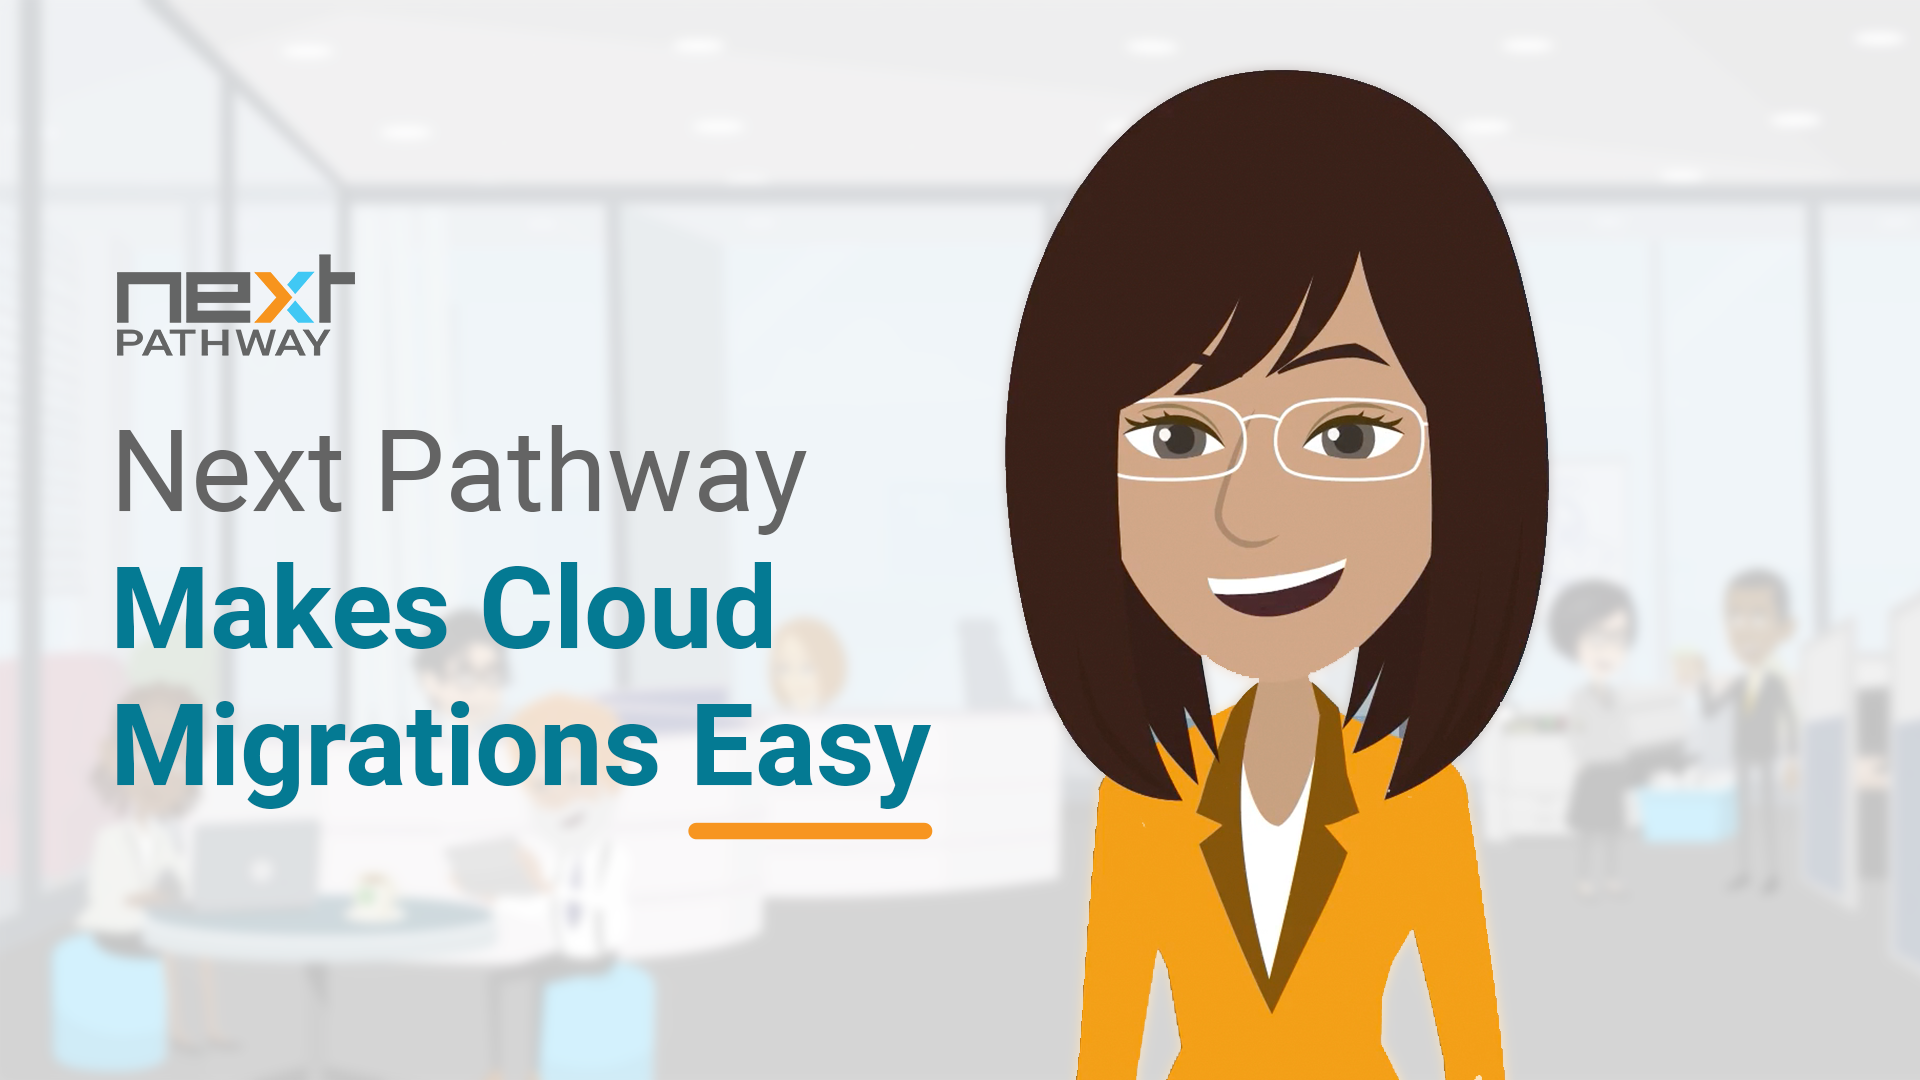 Next Pathway Makes Cloud Migrations Easy